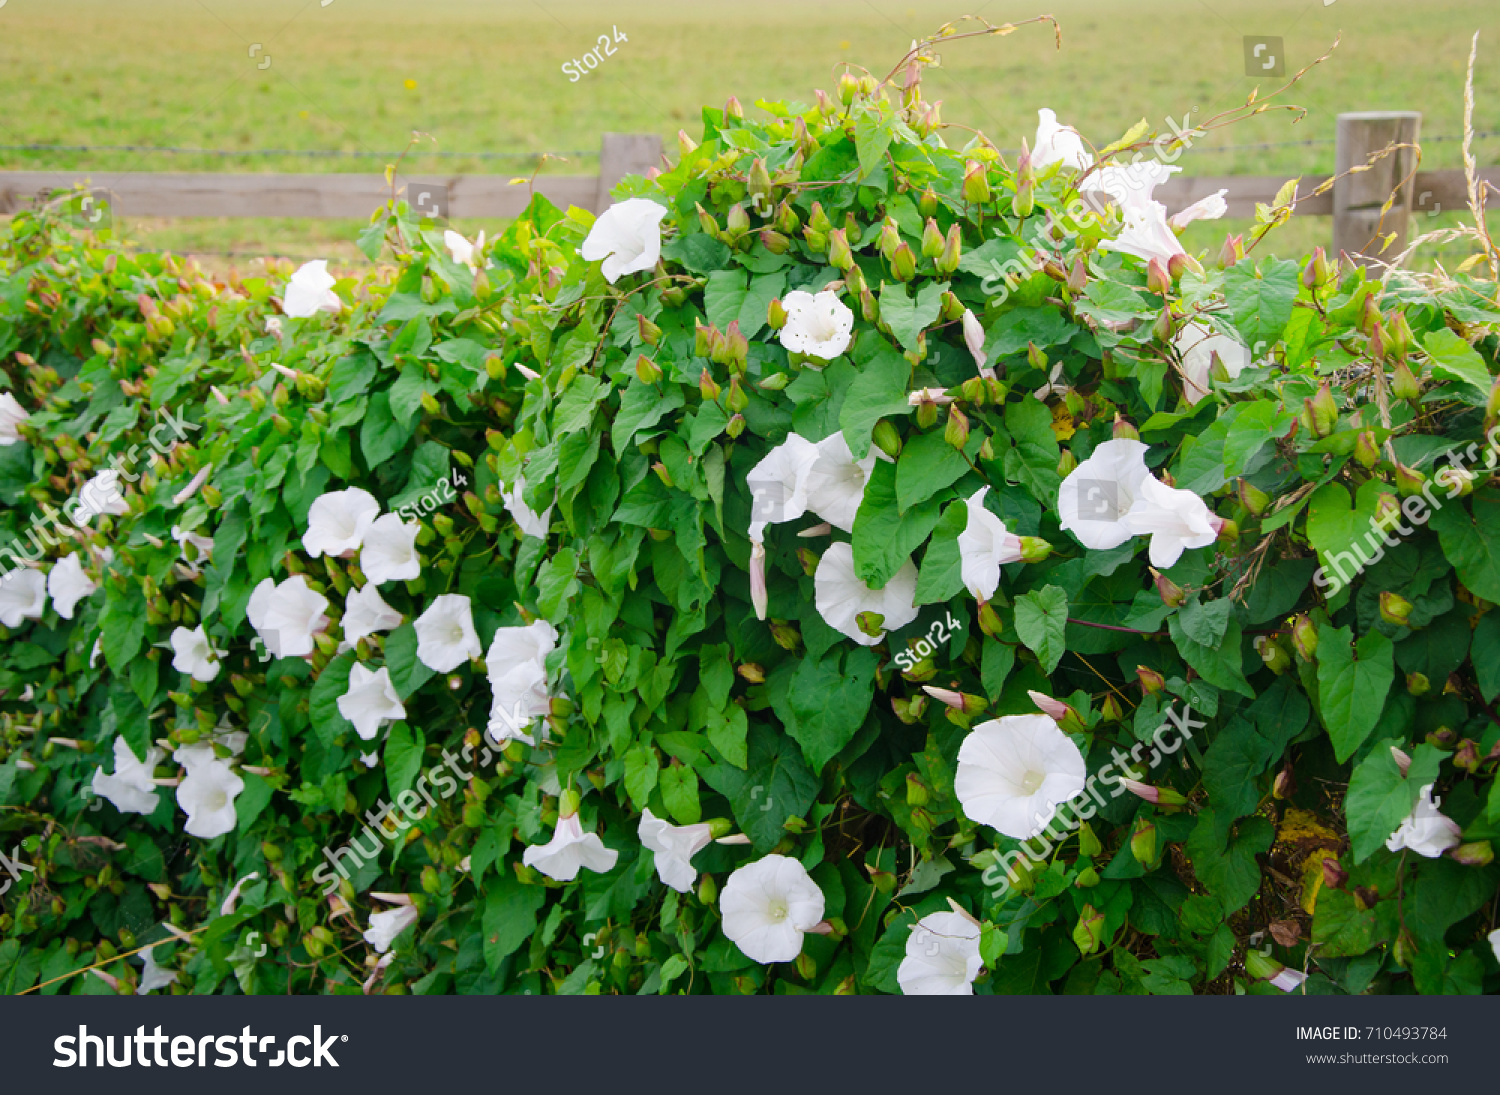 White Flowers Vine Fence Edge Front Stock Photo Edit Now 710493784